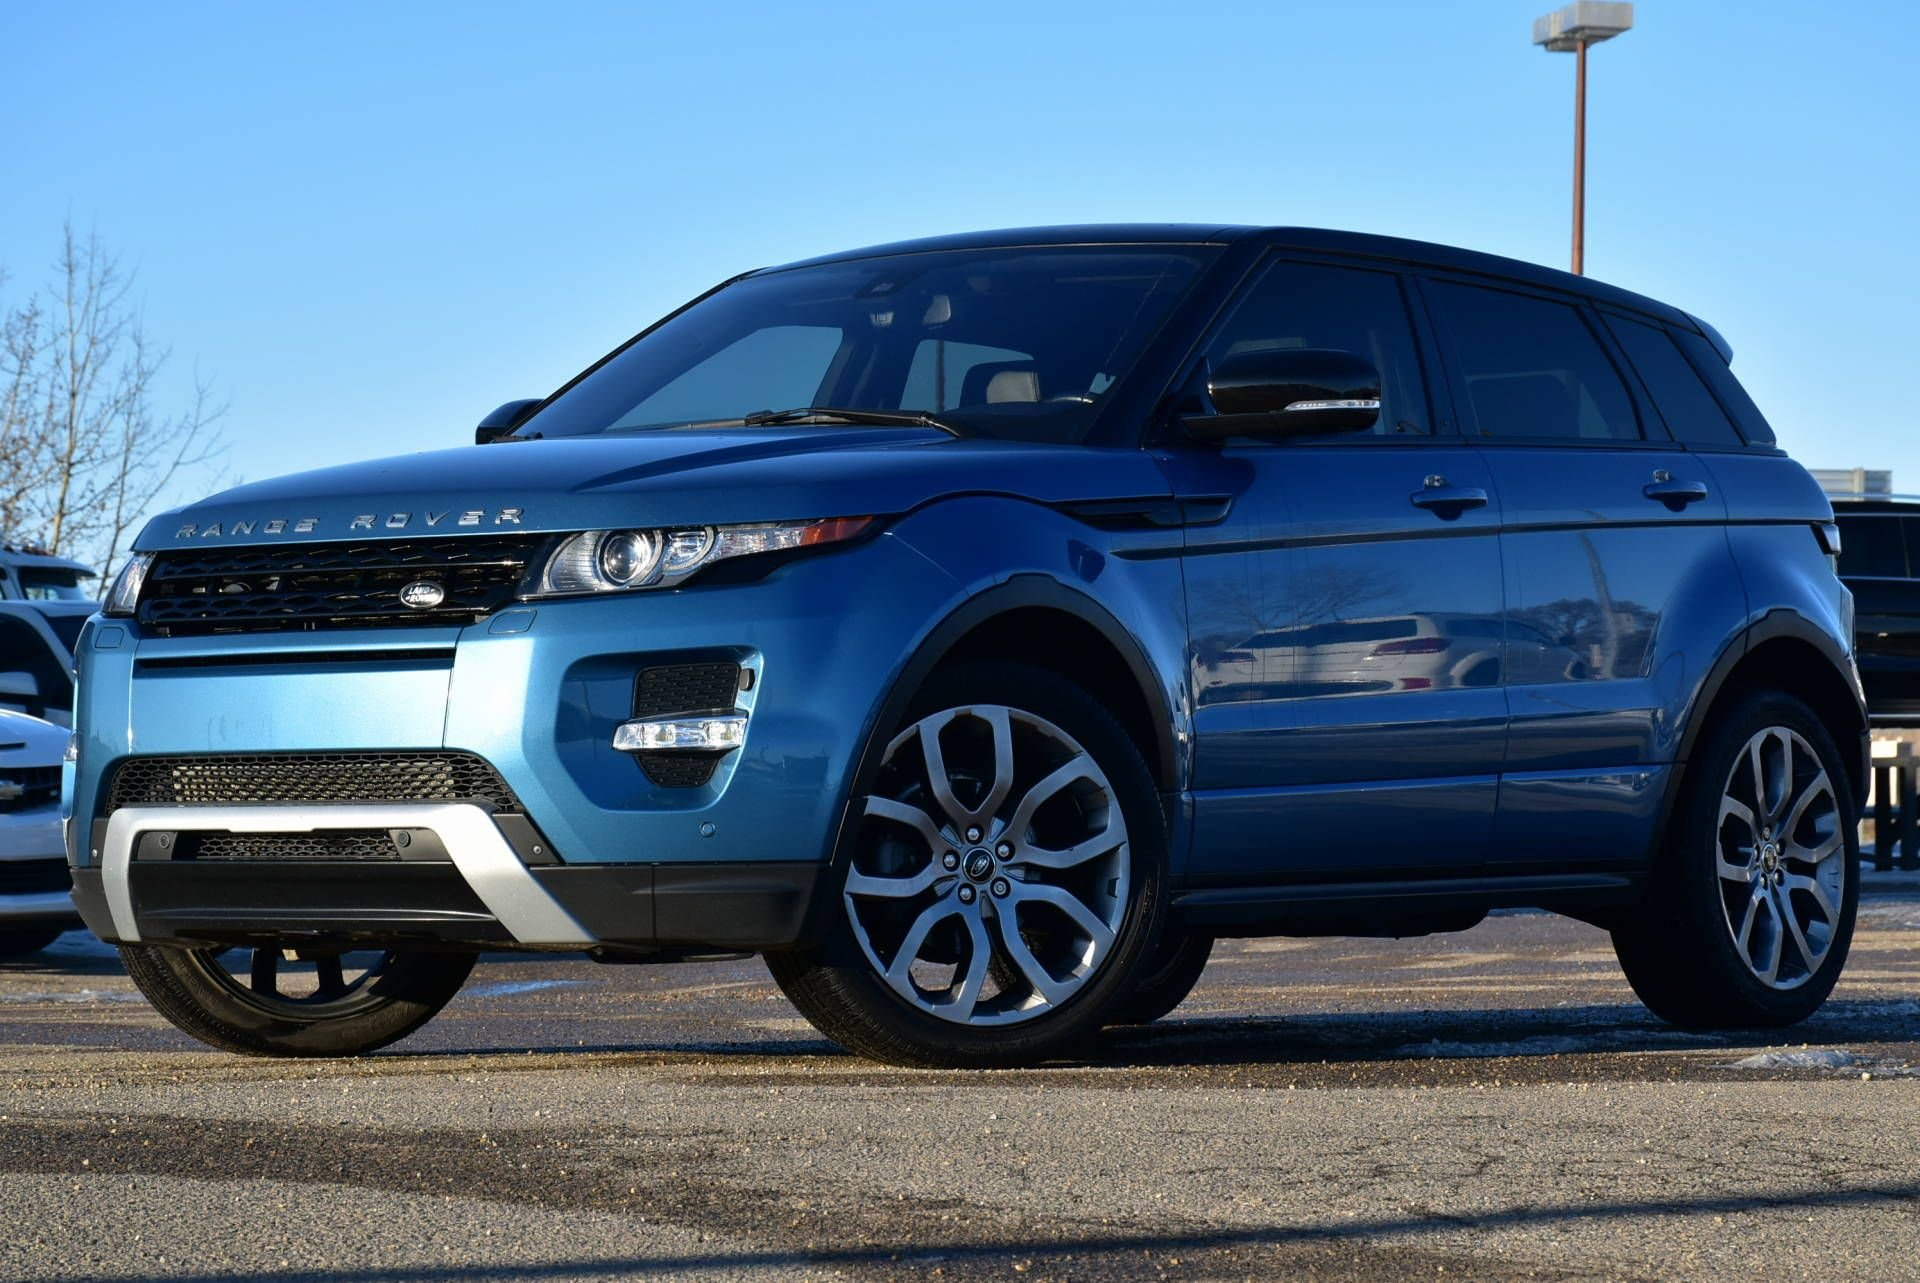 2013 land rover range rover evoque with heated seats